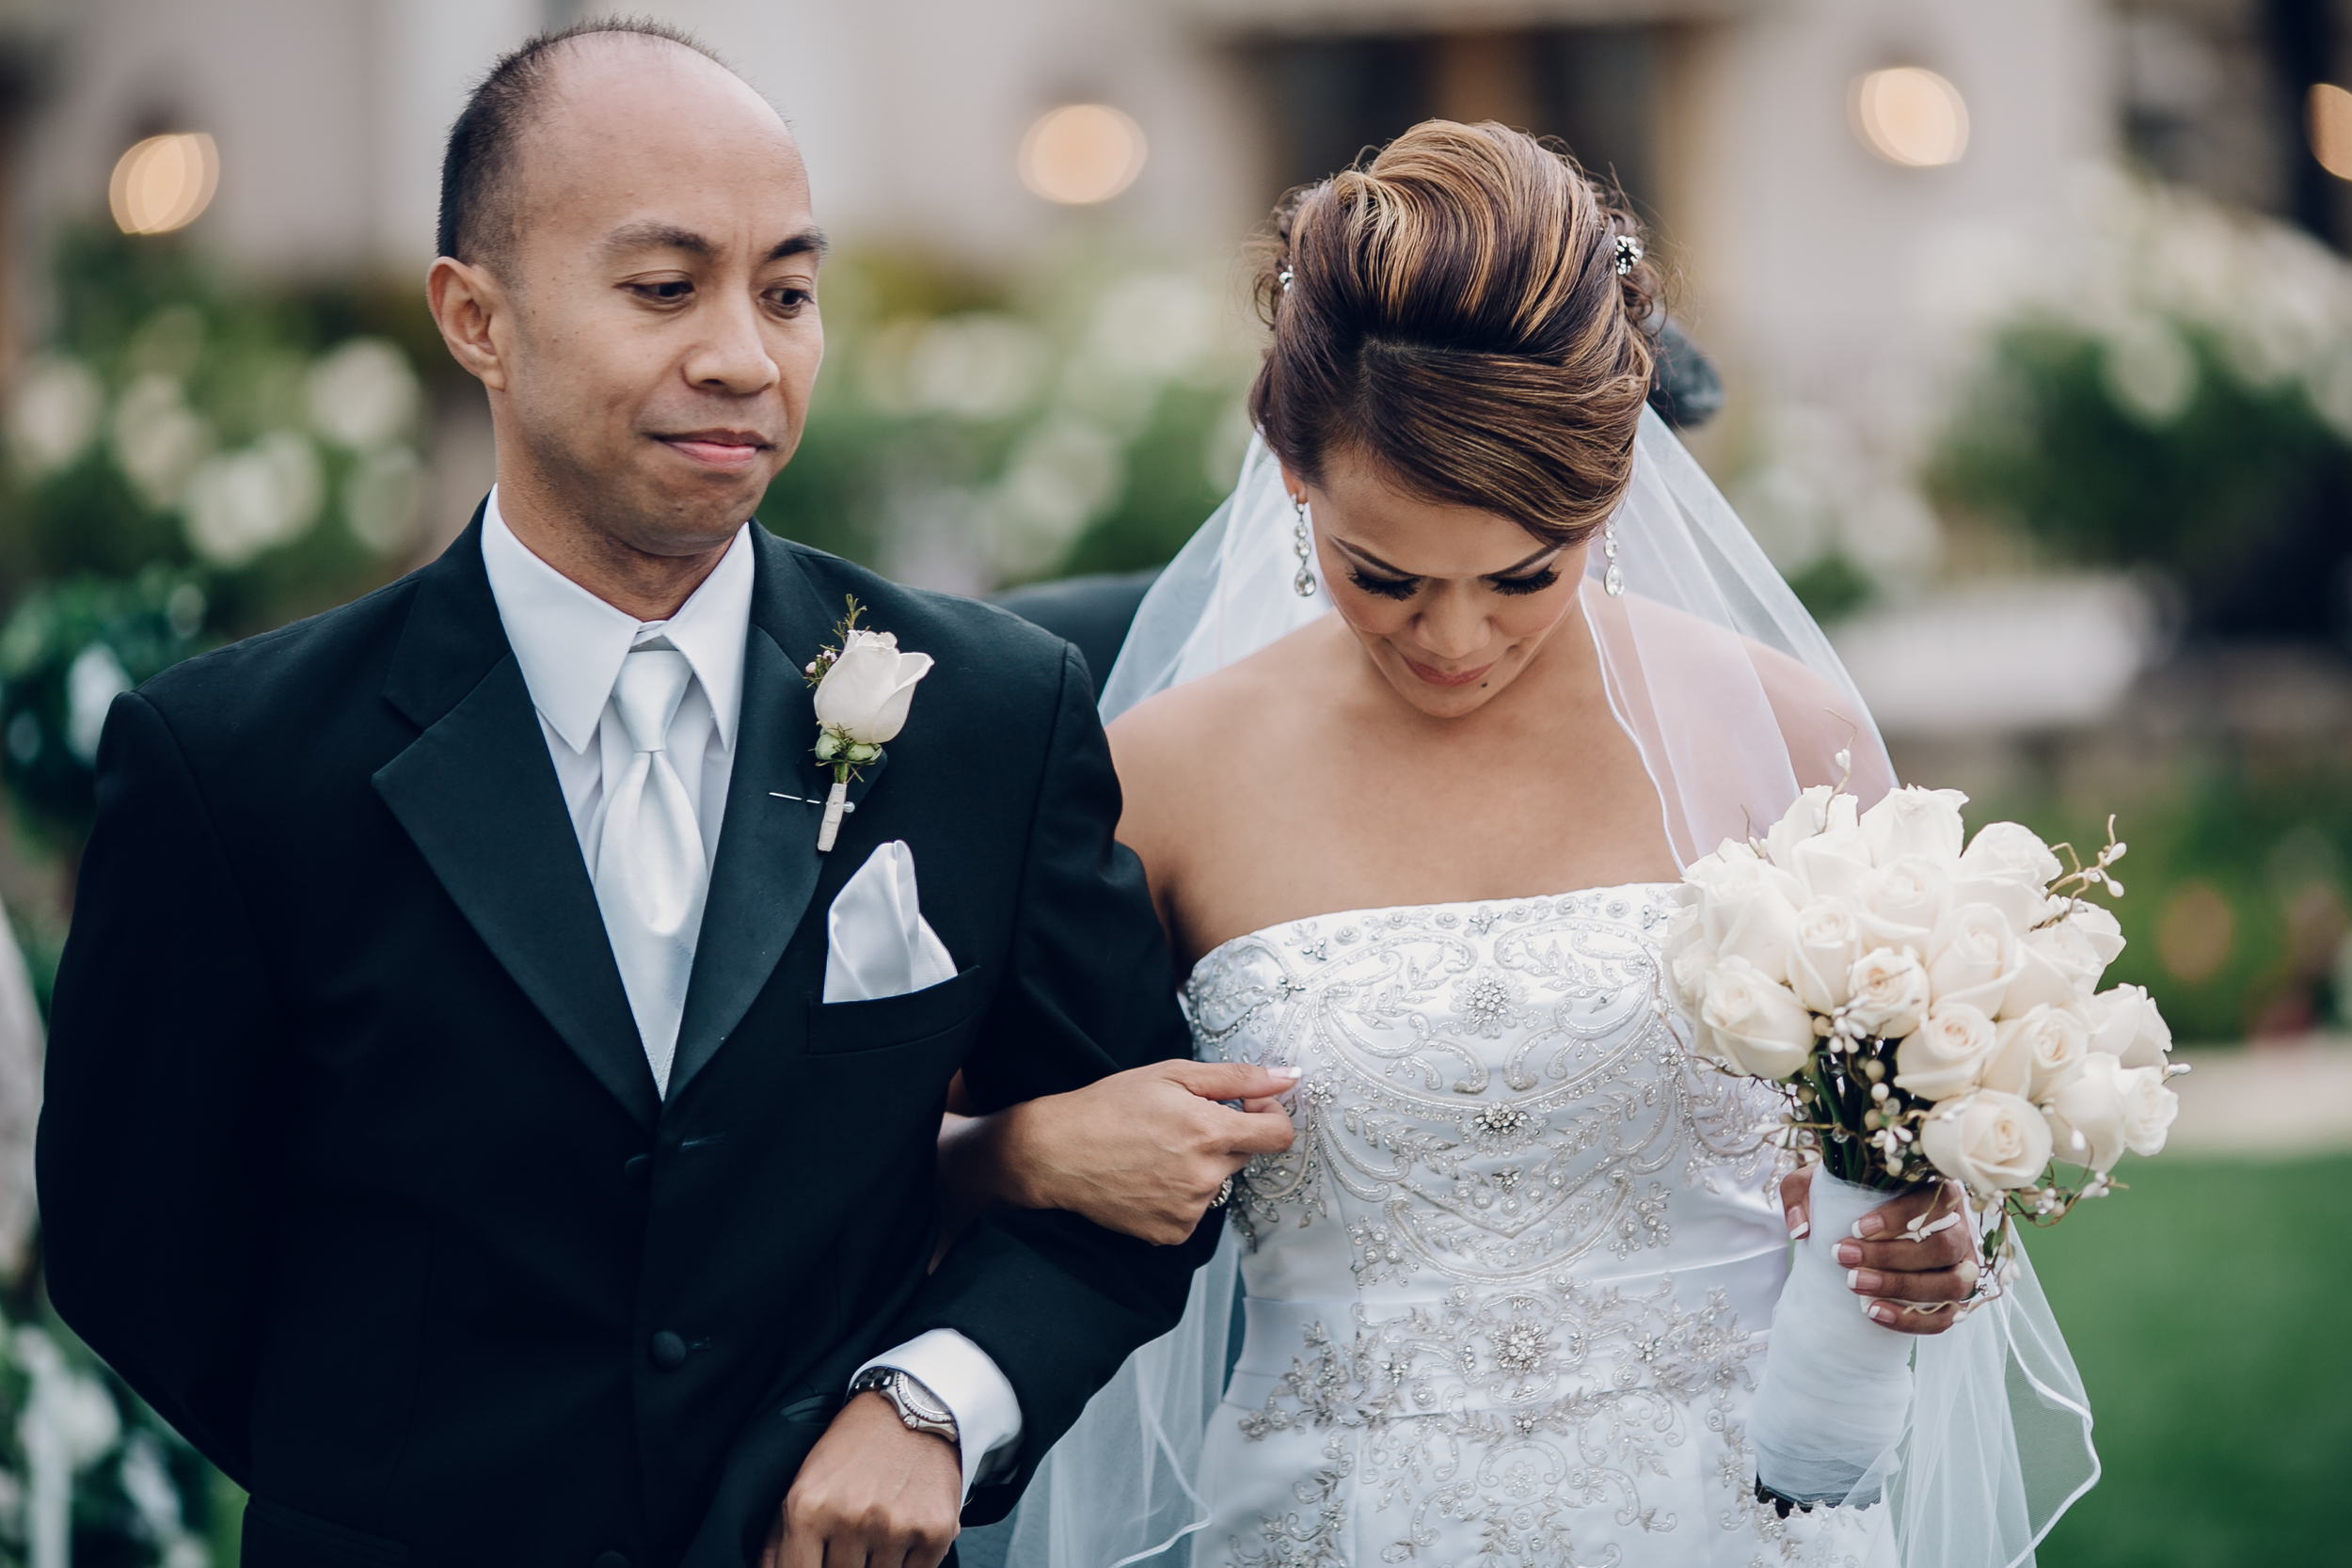 Shiela + Lester's Wedding 9-30-15 114.jpg